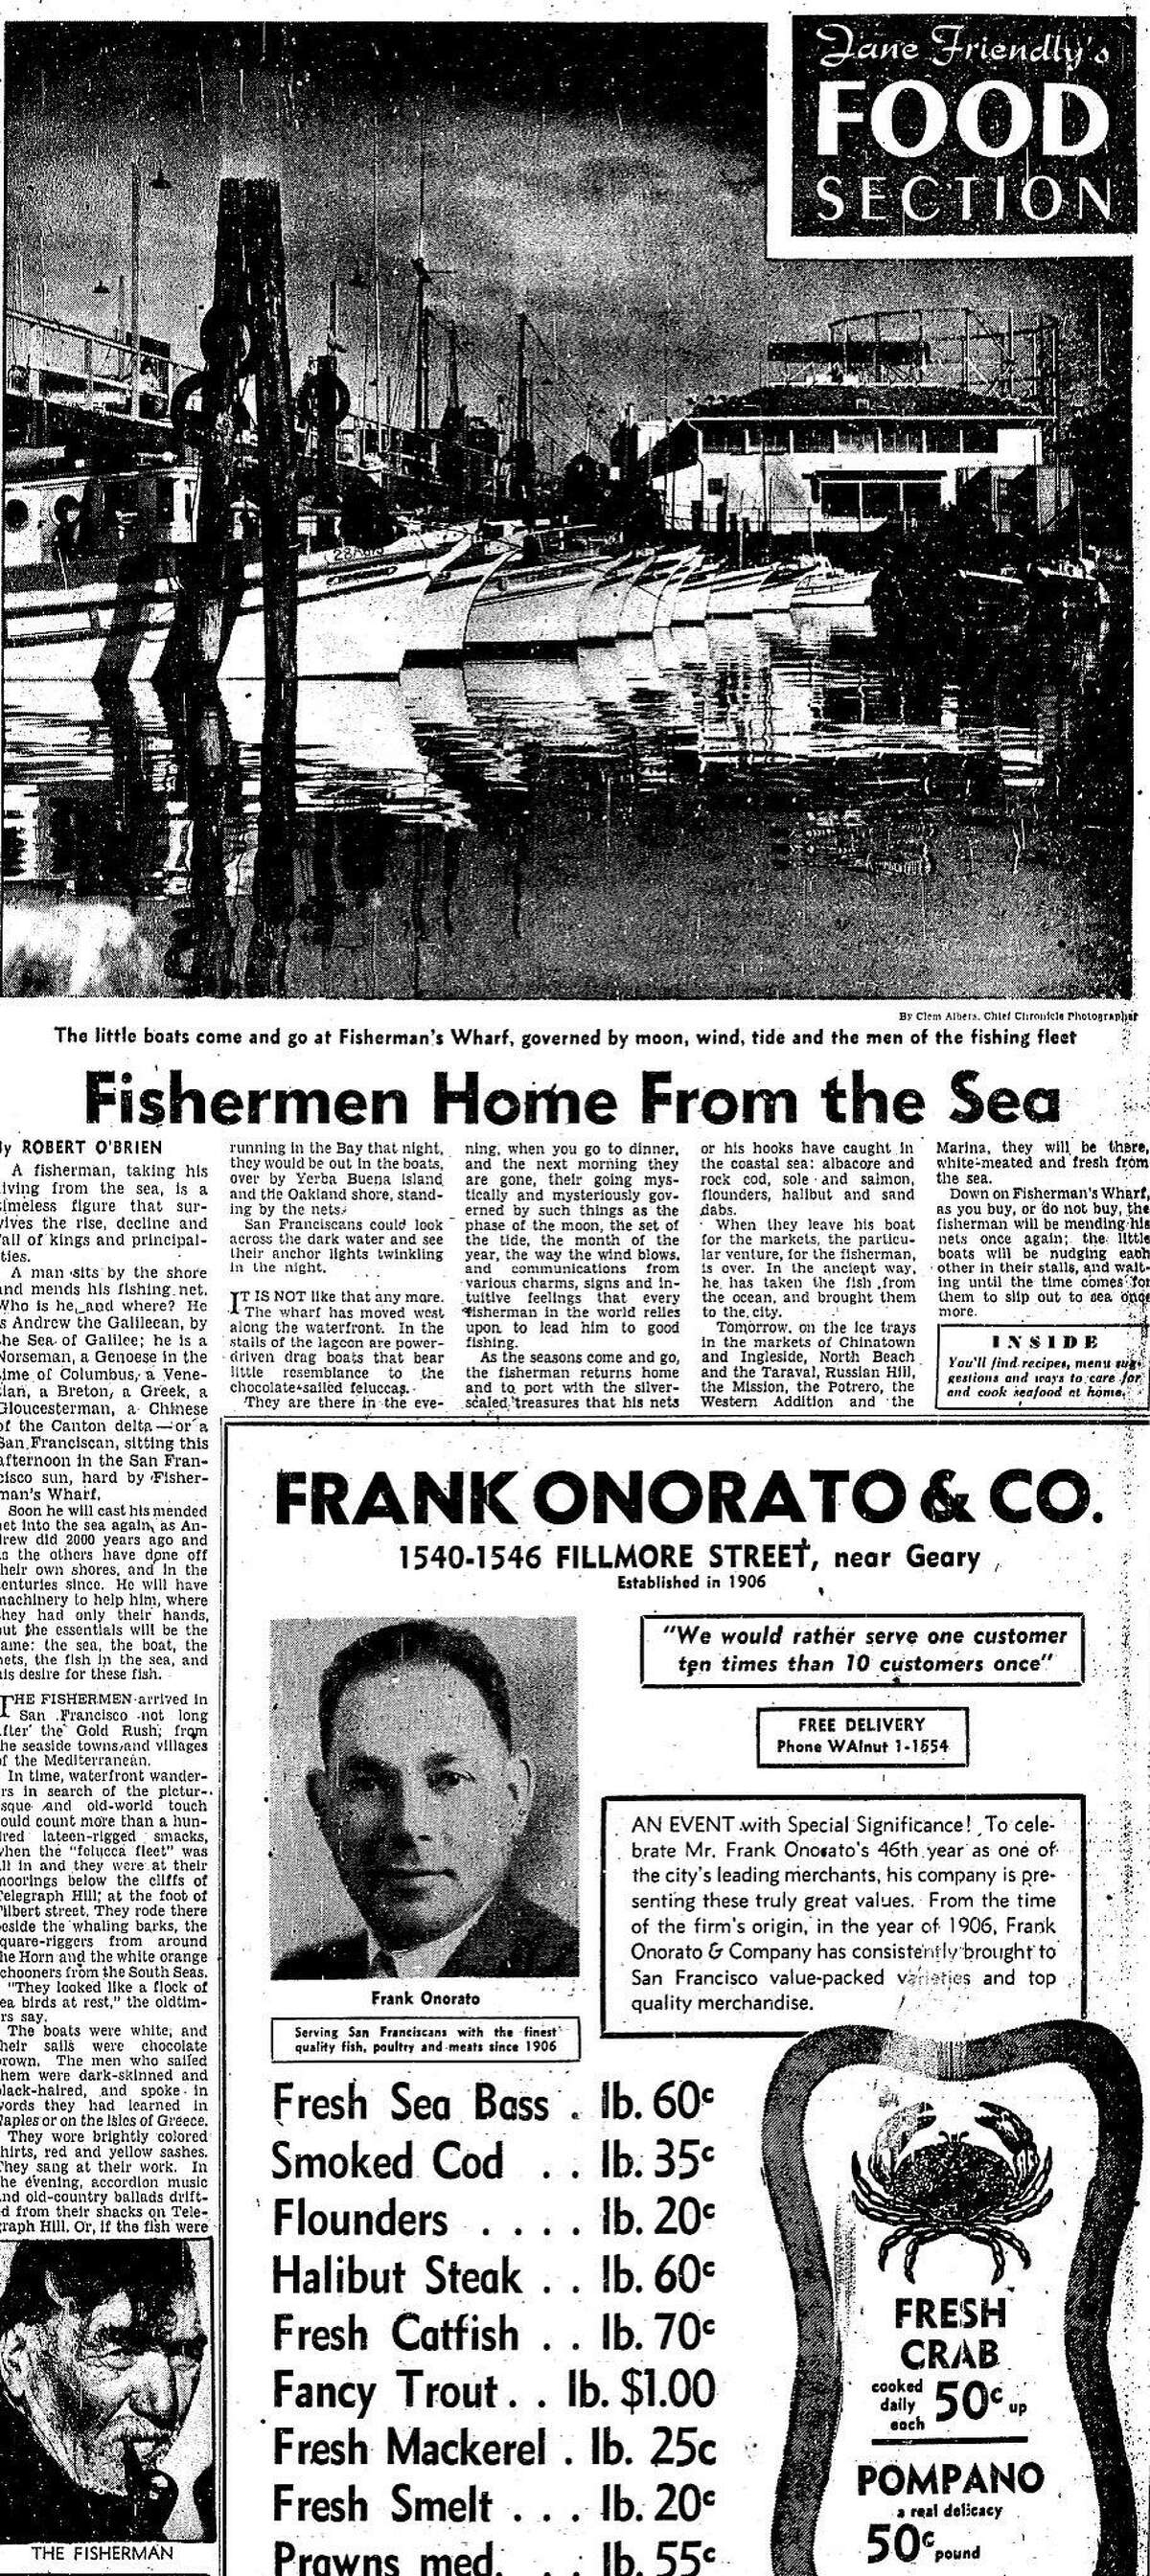 A Chronicle Food Section story on the fishing fleet and Fisherman's Wharf February 20, 1952